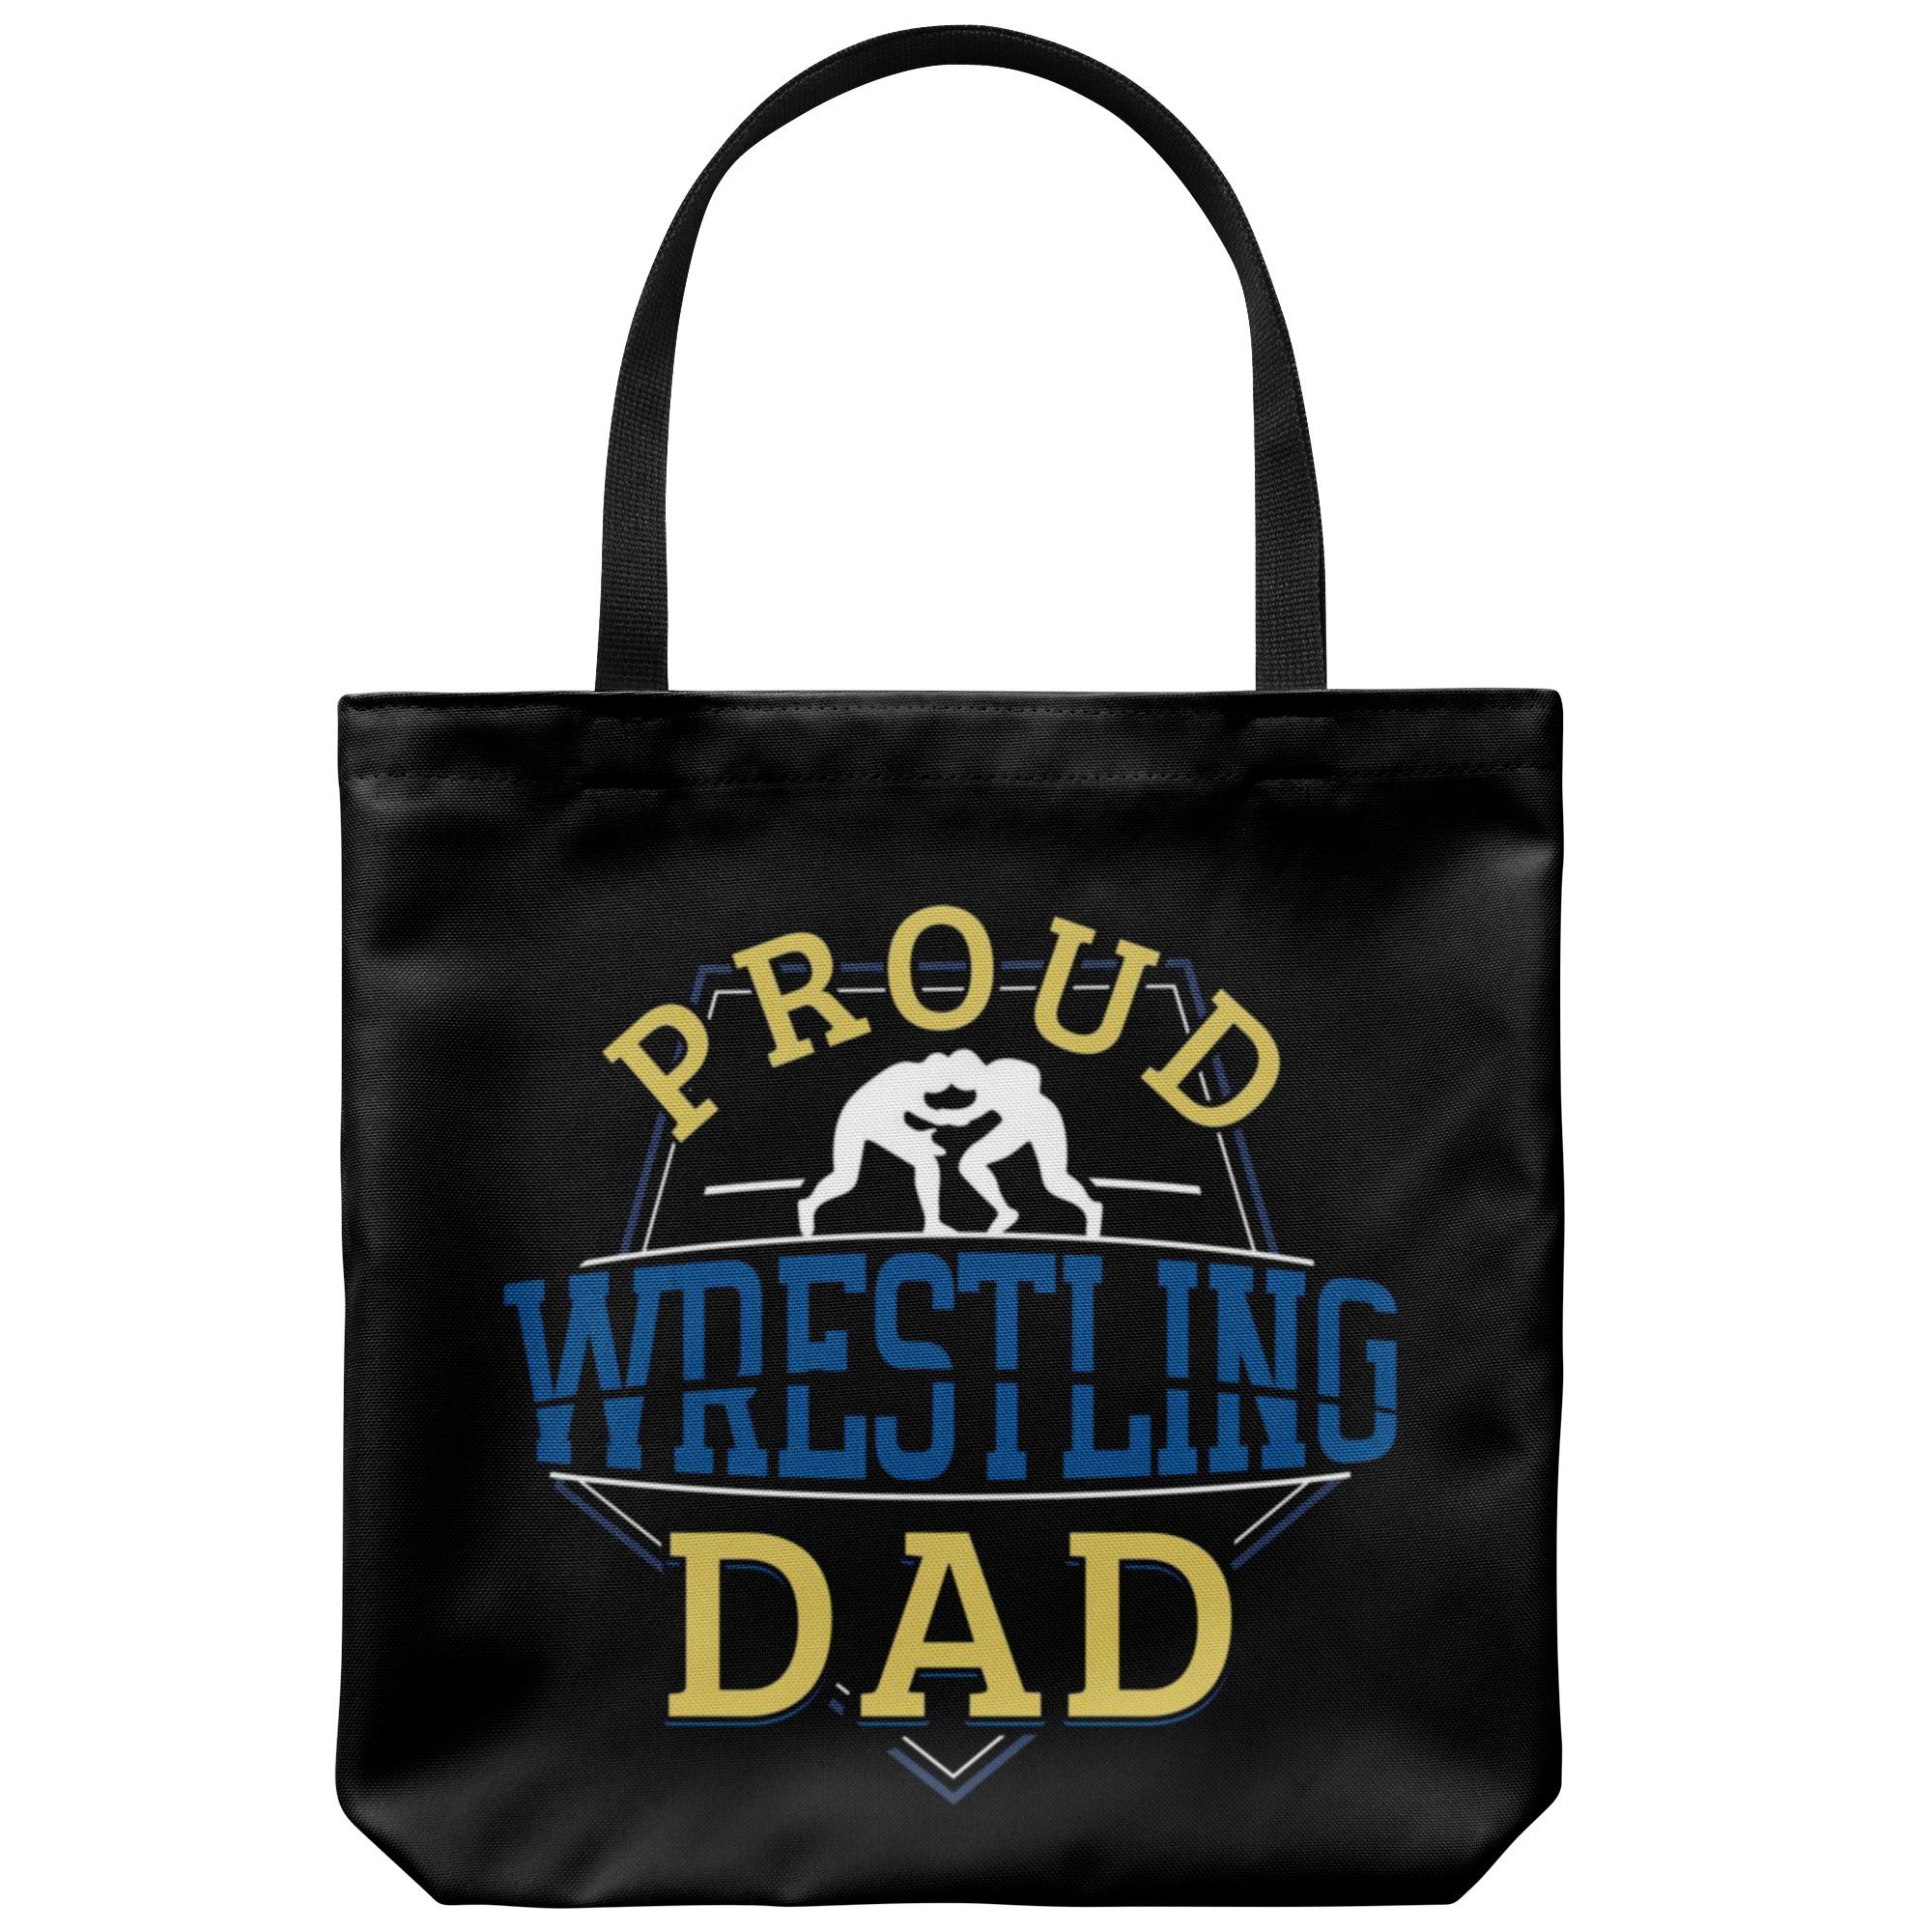 Wrestling Dad Canvas Tote Bag Funny Father's Day Wrestler Gifts Proud - Proud Dad